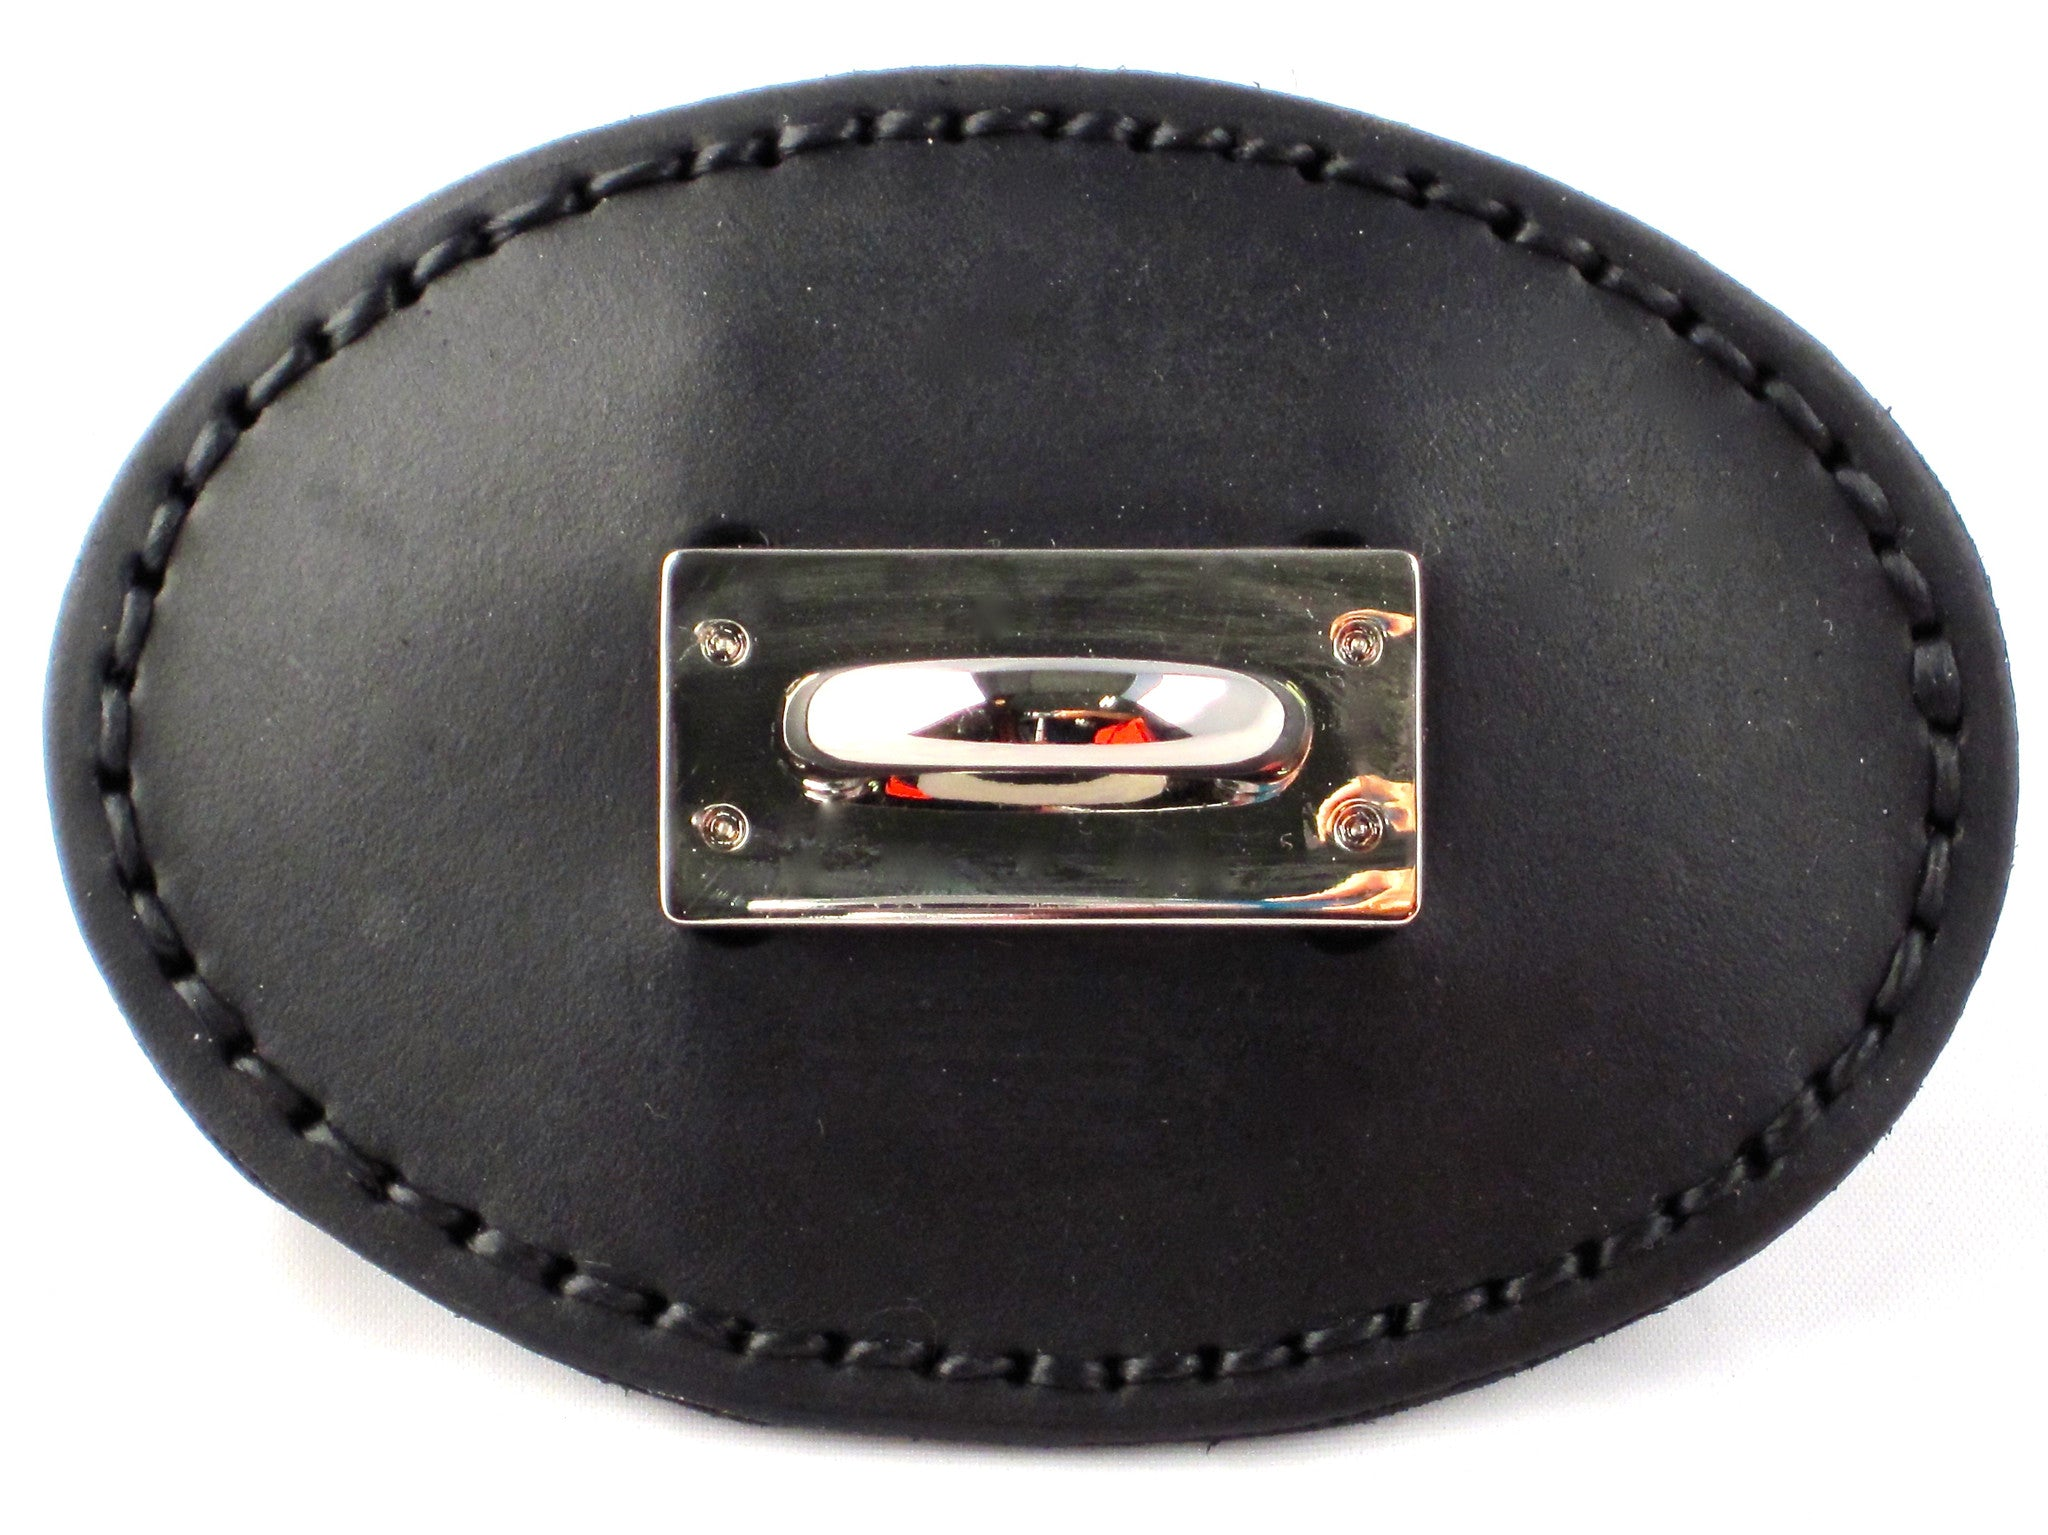 HAND-STITCHED LEATHER BUCKLE ADORNED WITH A STAPLE PLATE  by NYET Jewelry.